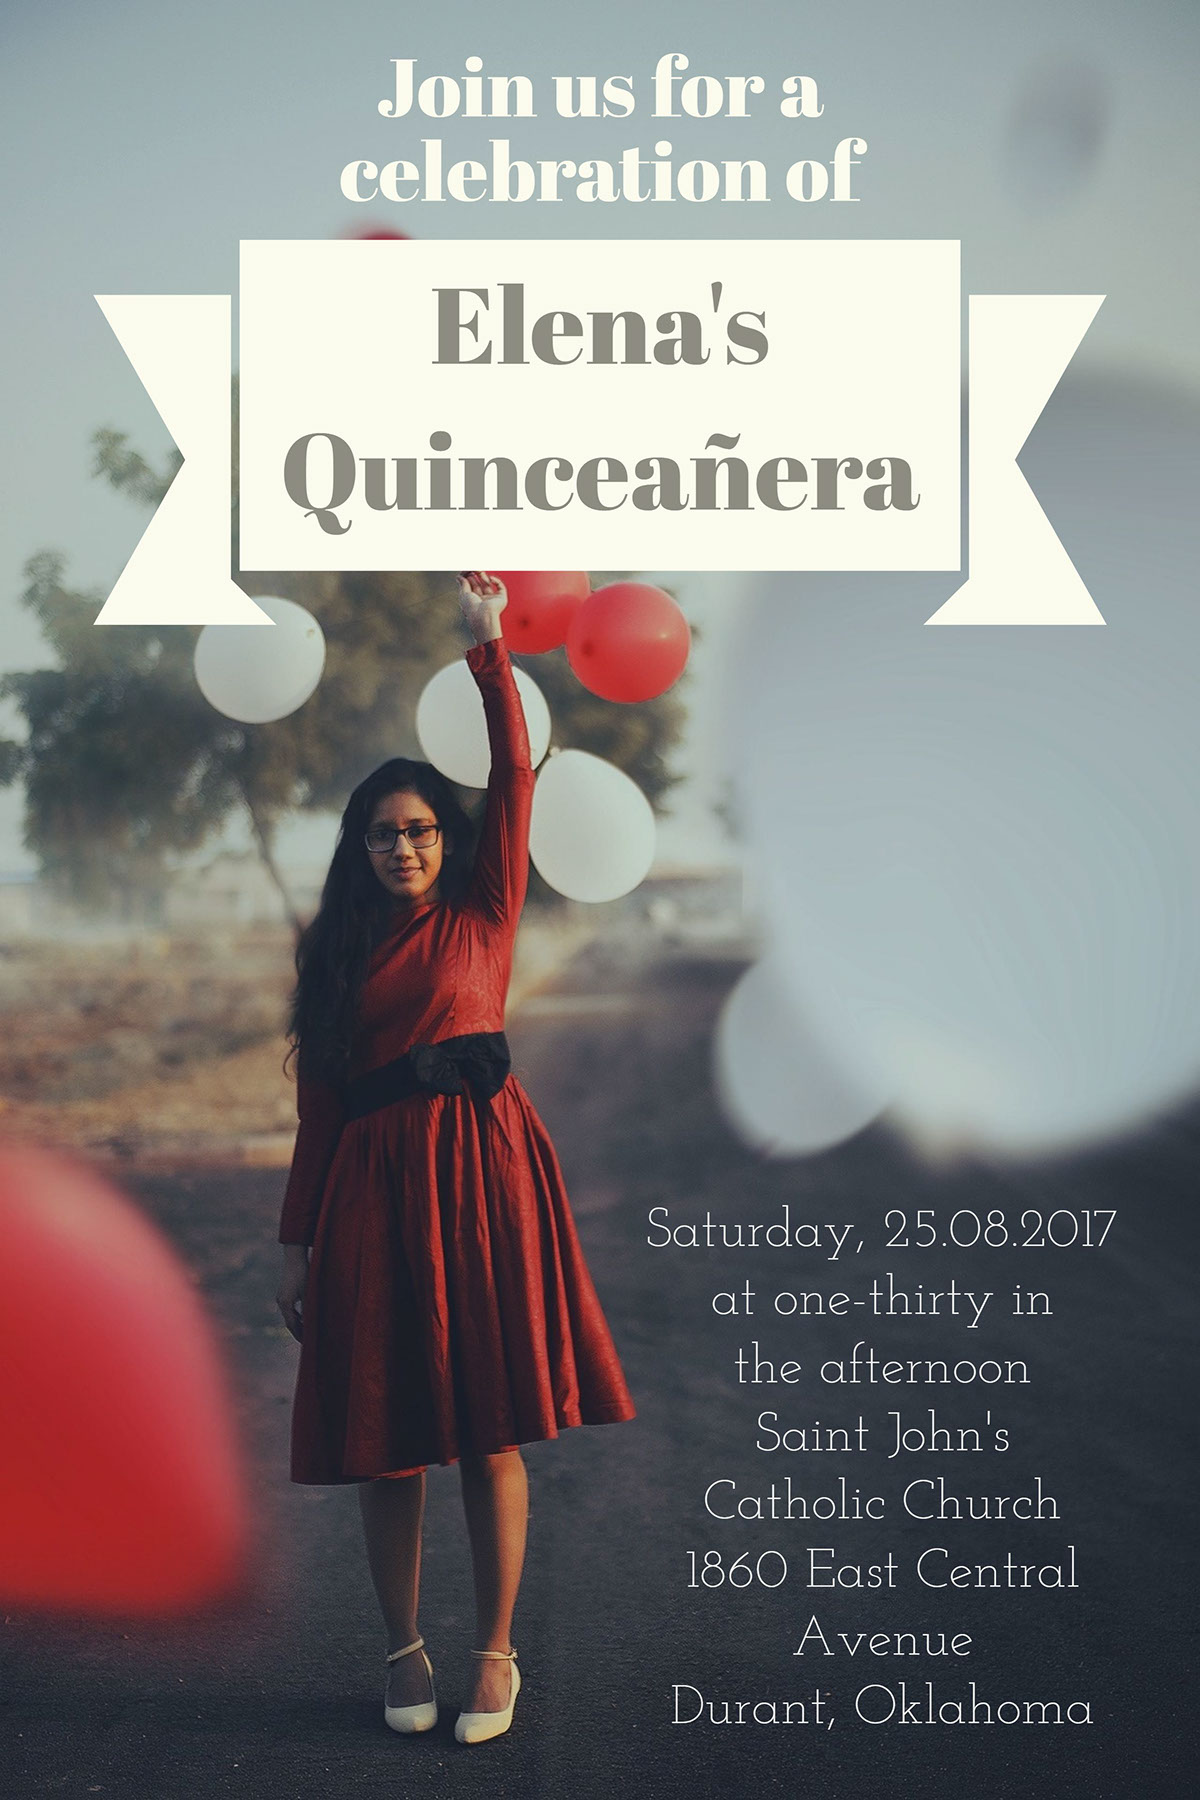 Saturday, 25.08.2017 at one-thirty in the afternoon Saint John's Catholic Church 1860 East Central Avenue Durant, Oklahoma Saturday, 25.08.2017 at one-thirty in the afternoon Saint John's Catholic Church 1860 East Central Avenue Durant, Oklahoma Elena's Quinceañera Join us for a celebration of